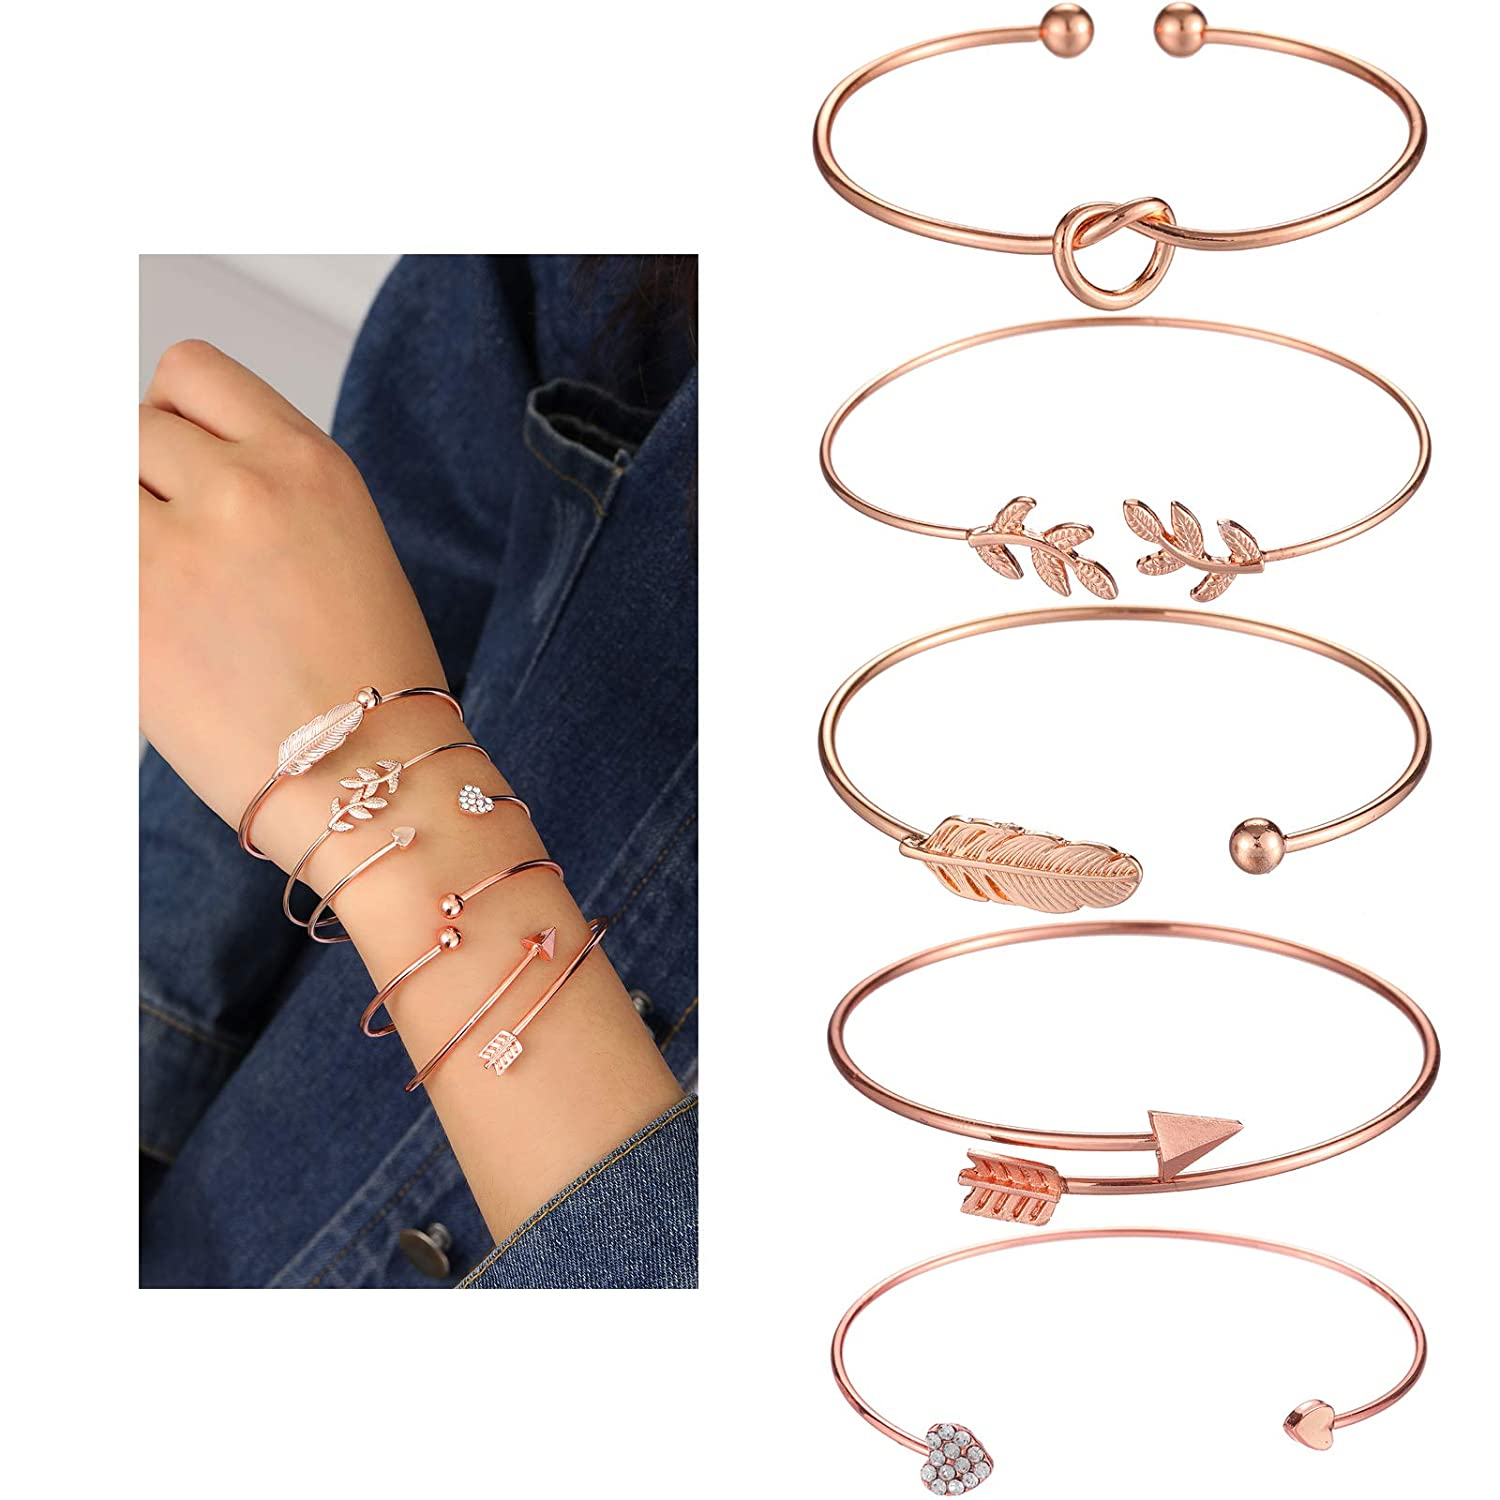 10pcs Bangle Rose Gold Bracelets for Women Girls Heart|Olive Leaf|Arrow|Feather|Knot Heart|Bowknot|Triangle|Six-Pointed Star Open Cuff Bracelet Set Adjustable